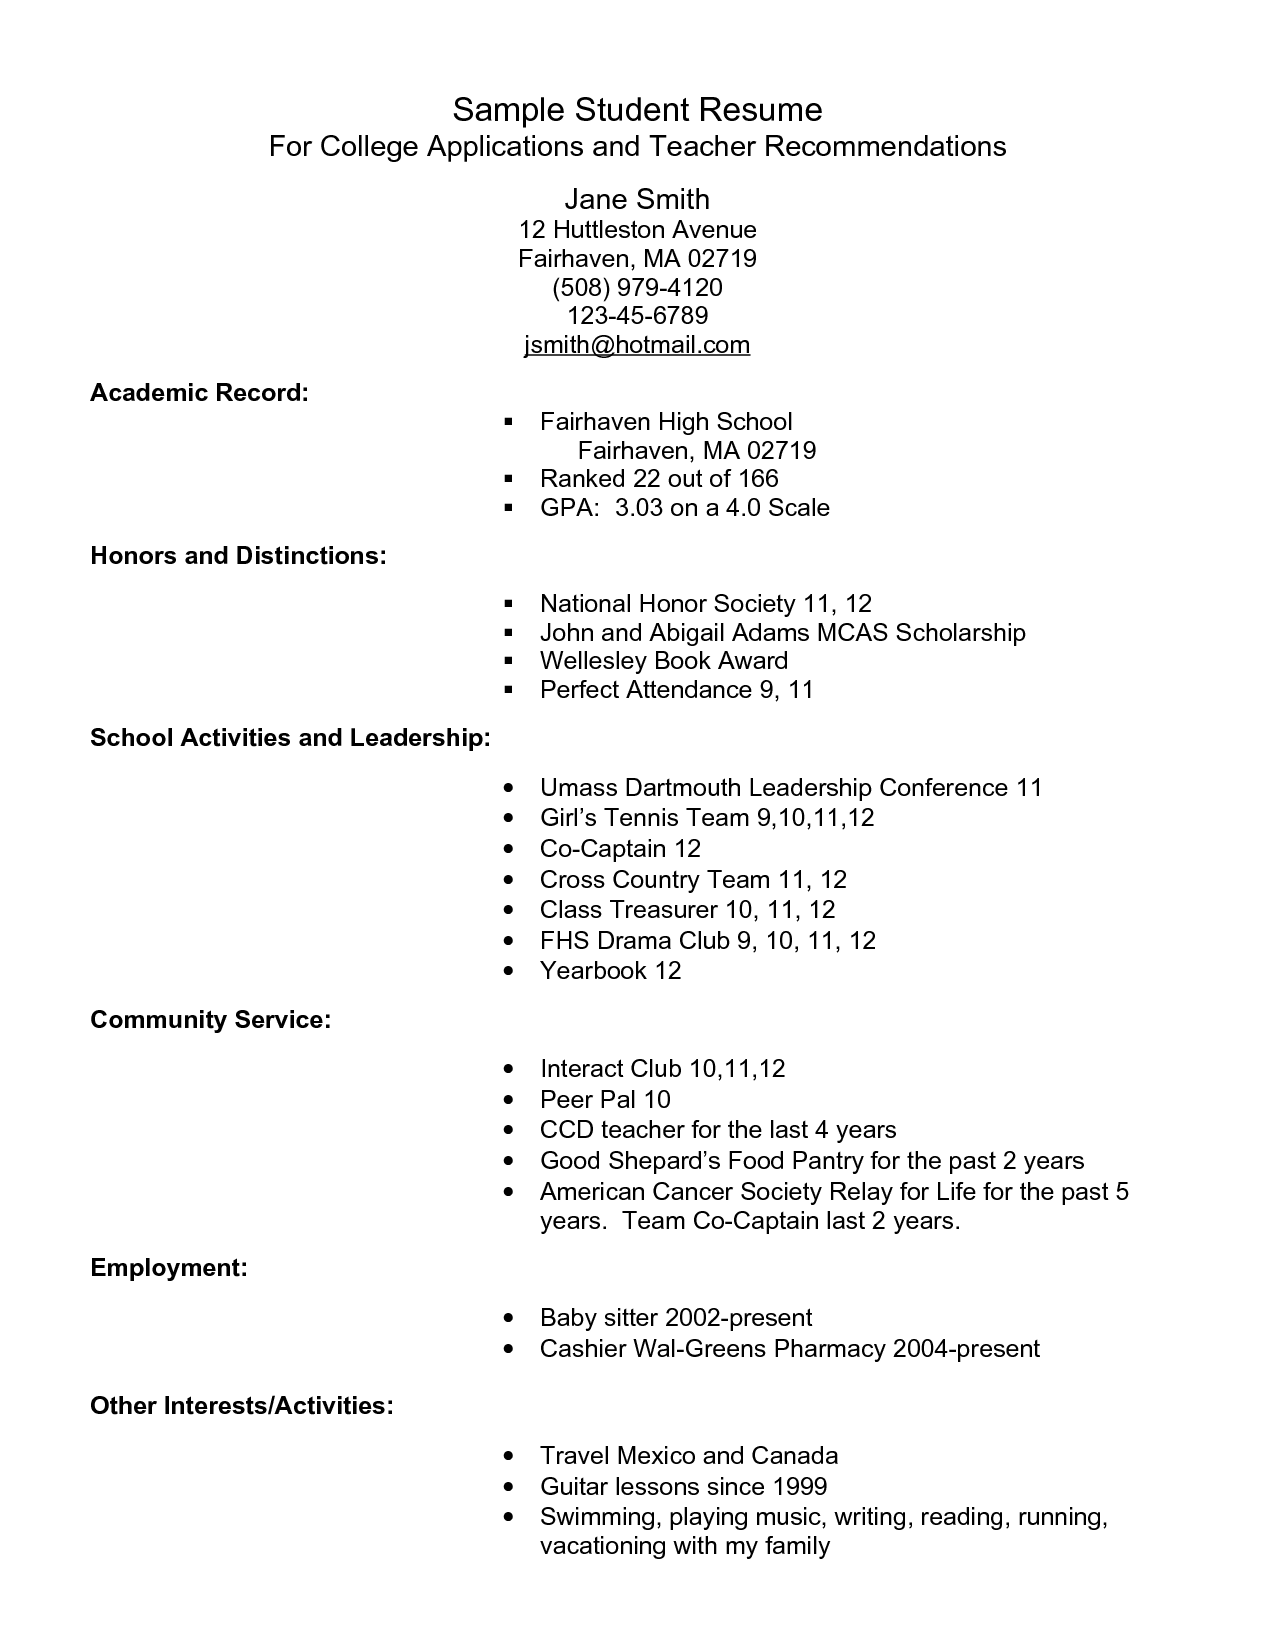 Example resume for high school students for college applications example resume for high school students for college applications sample student resume pdf by smapdi59 yelopaper Image collections